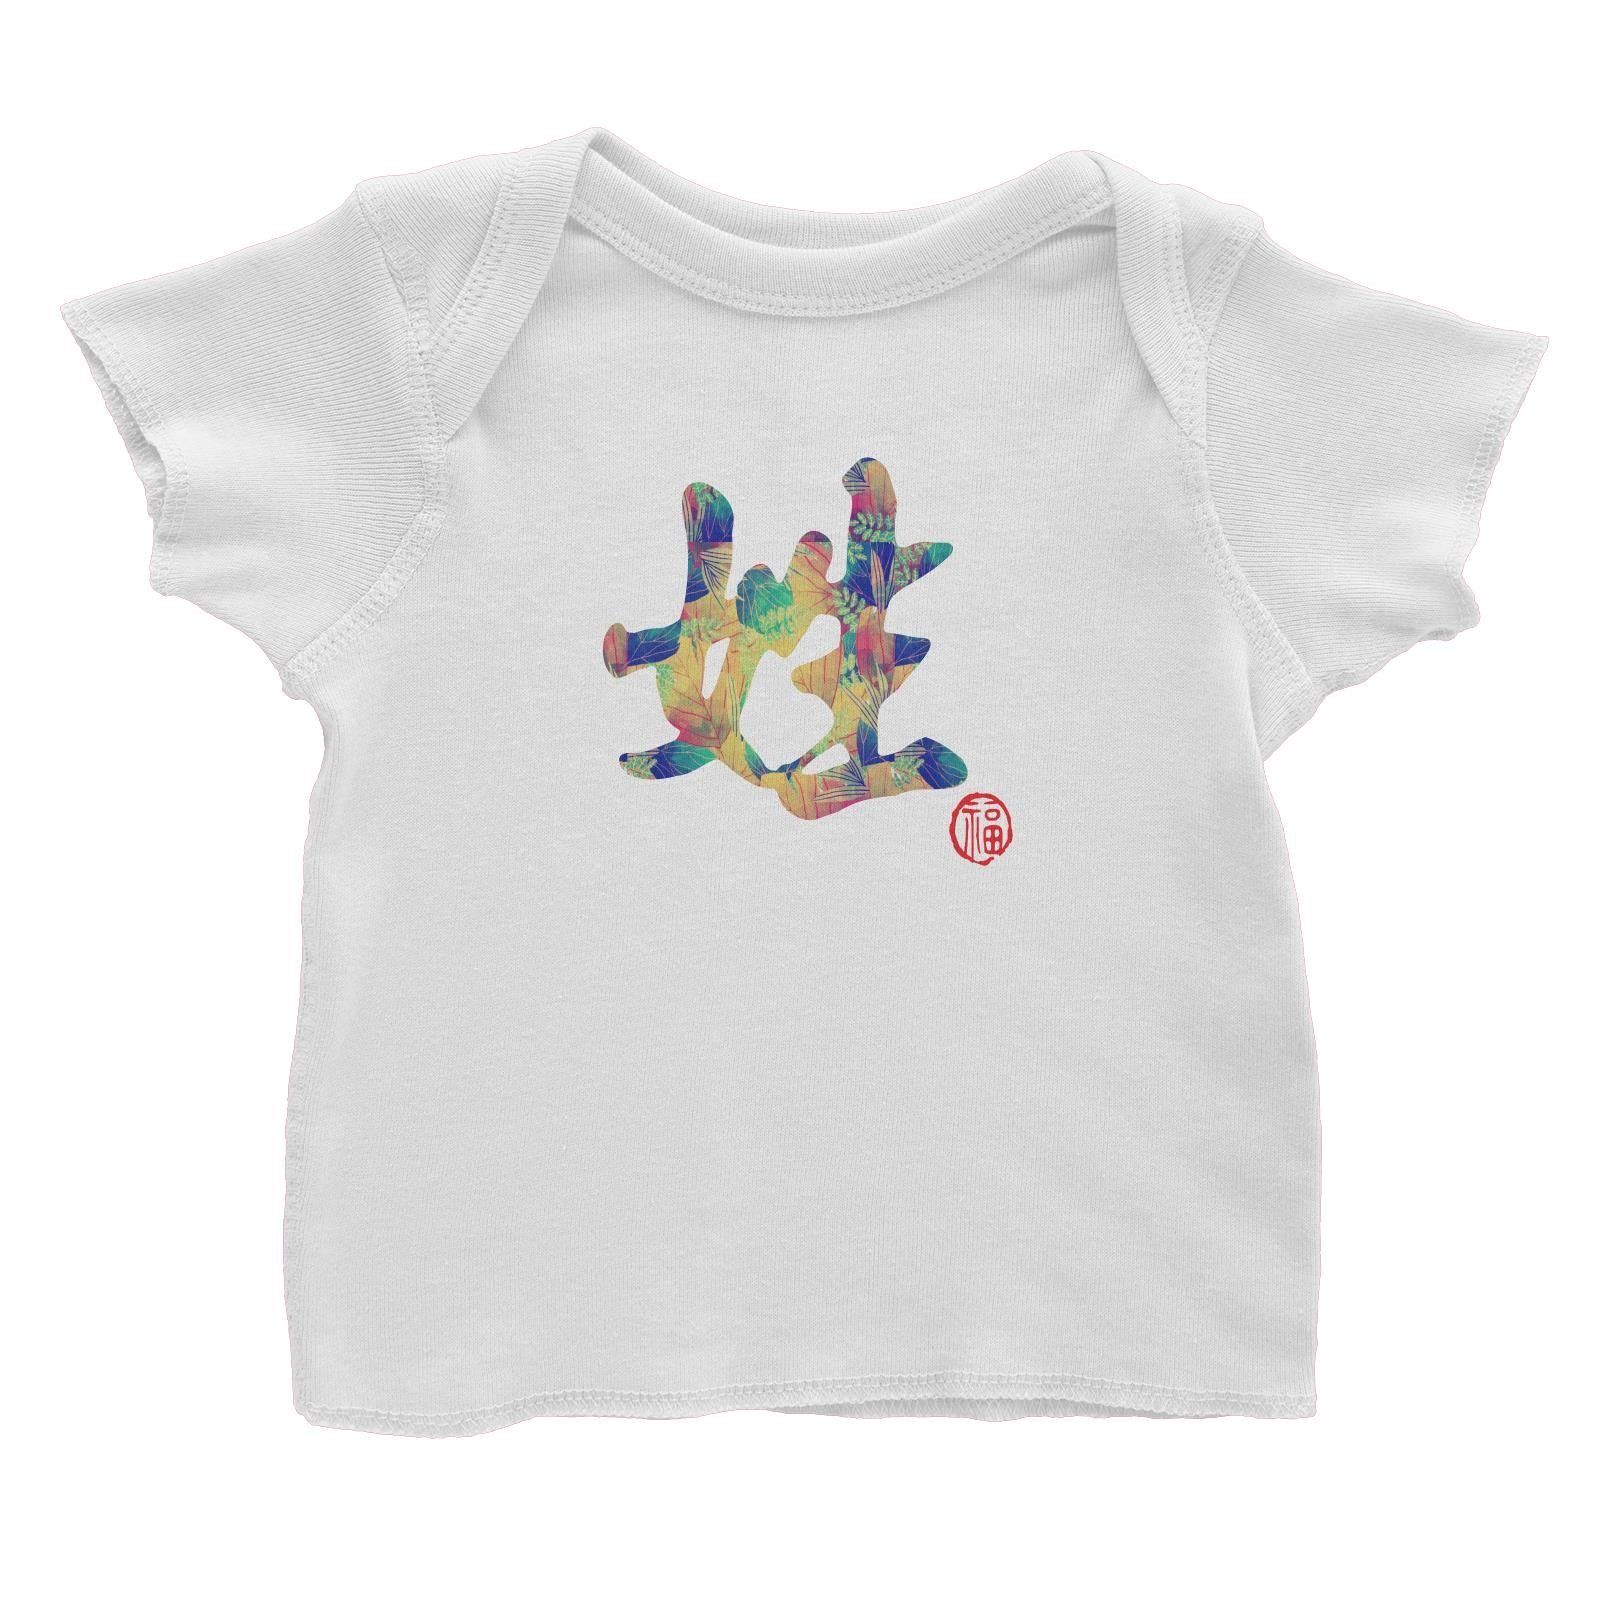 Chinese Surname Colour Nature Pattern with Prosperity Seal Baby T-Shirt Matching Family Personalizable Designs